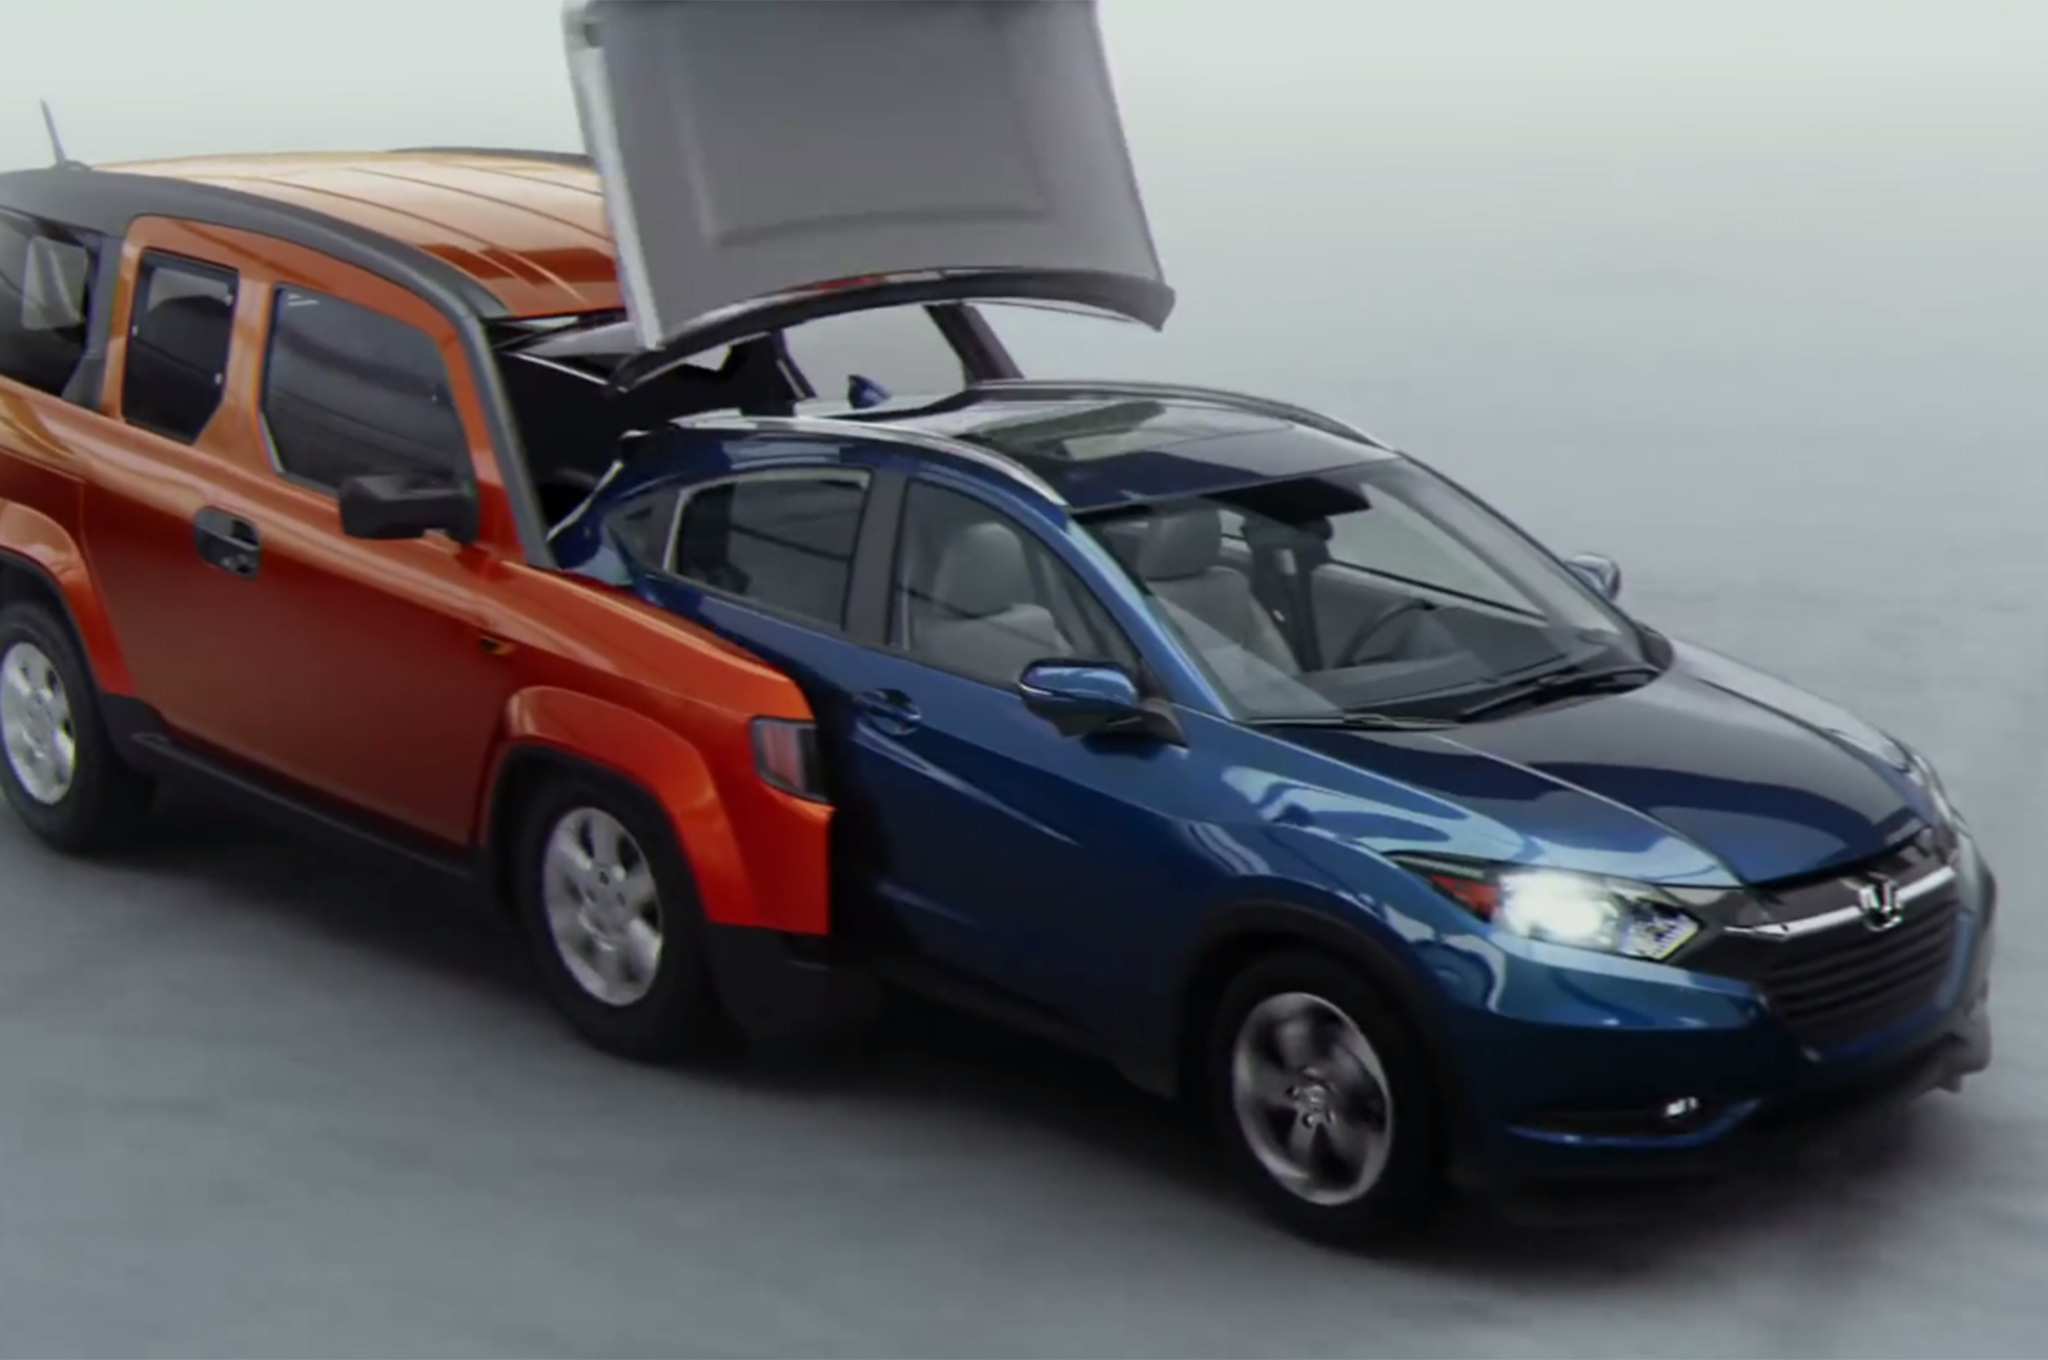 hight resolution of 2016 honda hr v ad features 7 hondas from the past motortrend 2000 honda civic wiring diagram 2002 honda cr v wiring diagram roof